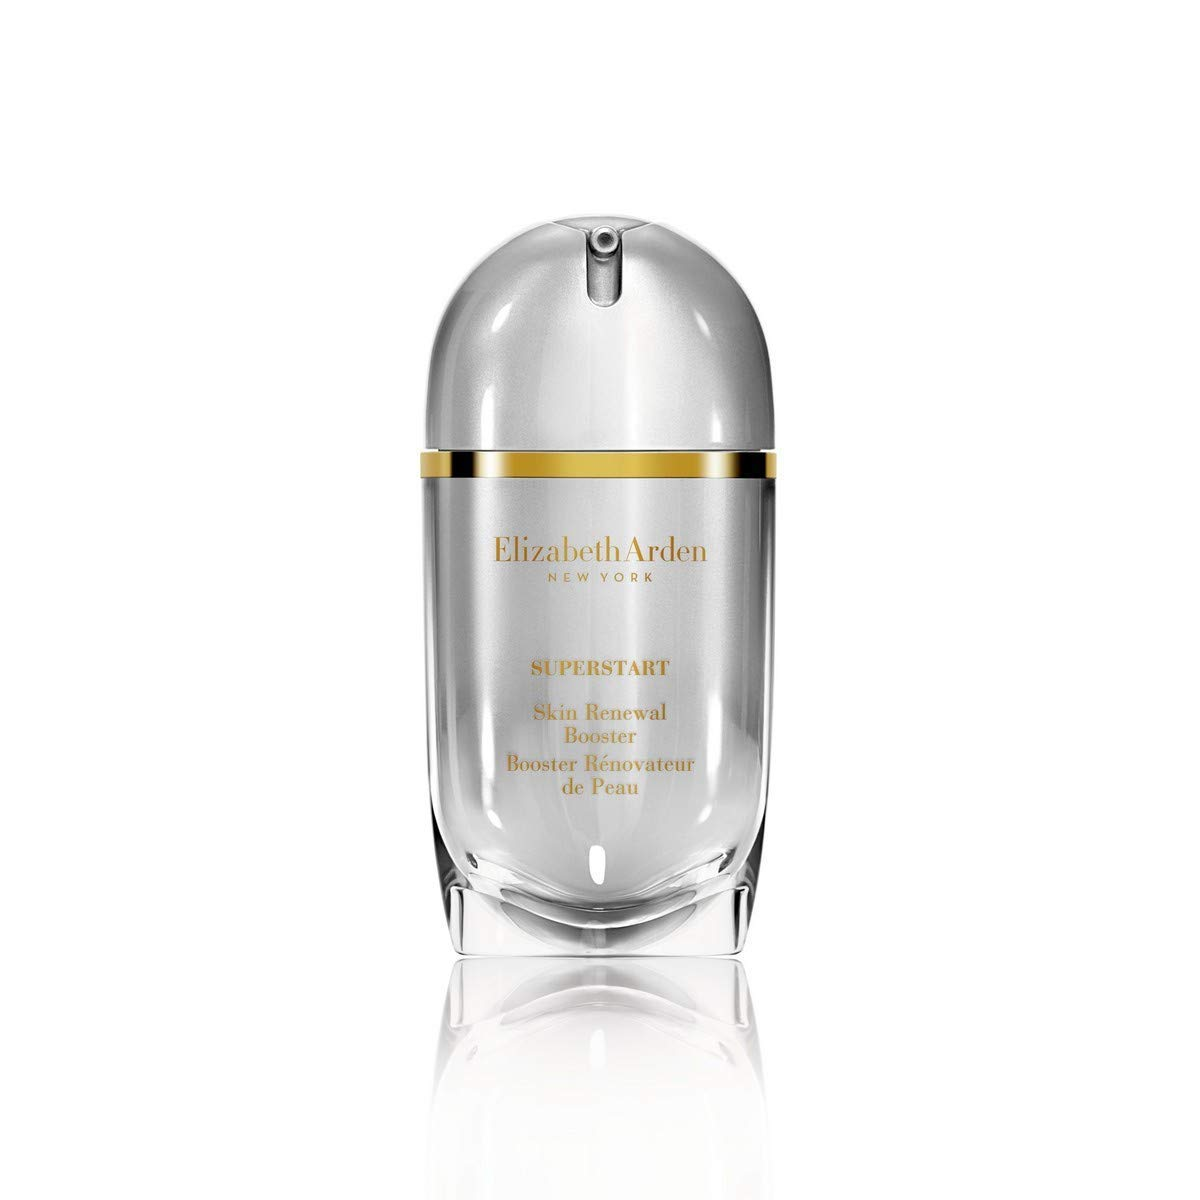 Elizabeth Arden Superstart Skin Renewal Booster 1.0oz (30ml)